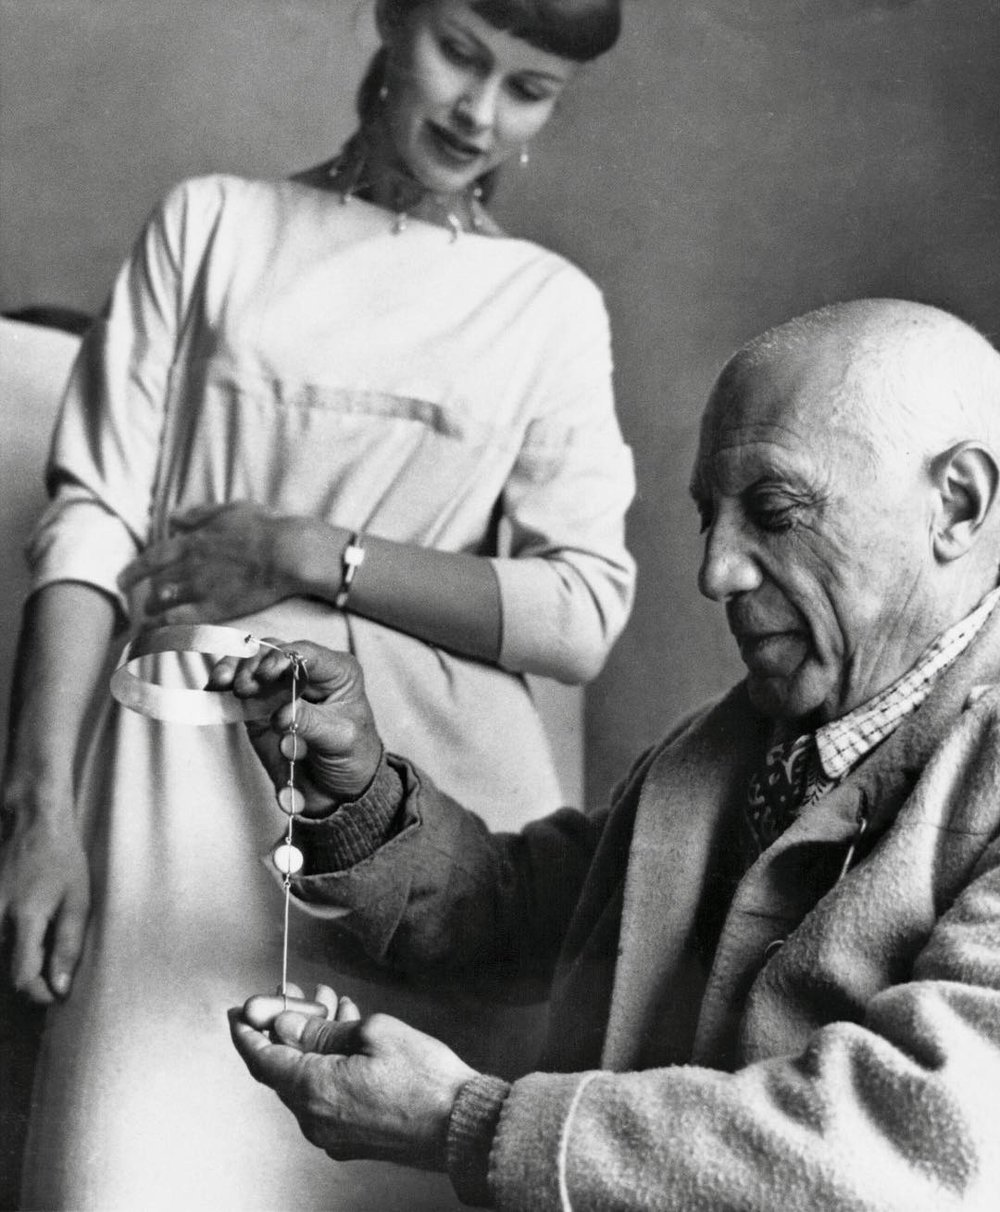 Torun & Picasso - Torun meets Pablo Picasso who is admiring her jewellery.